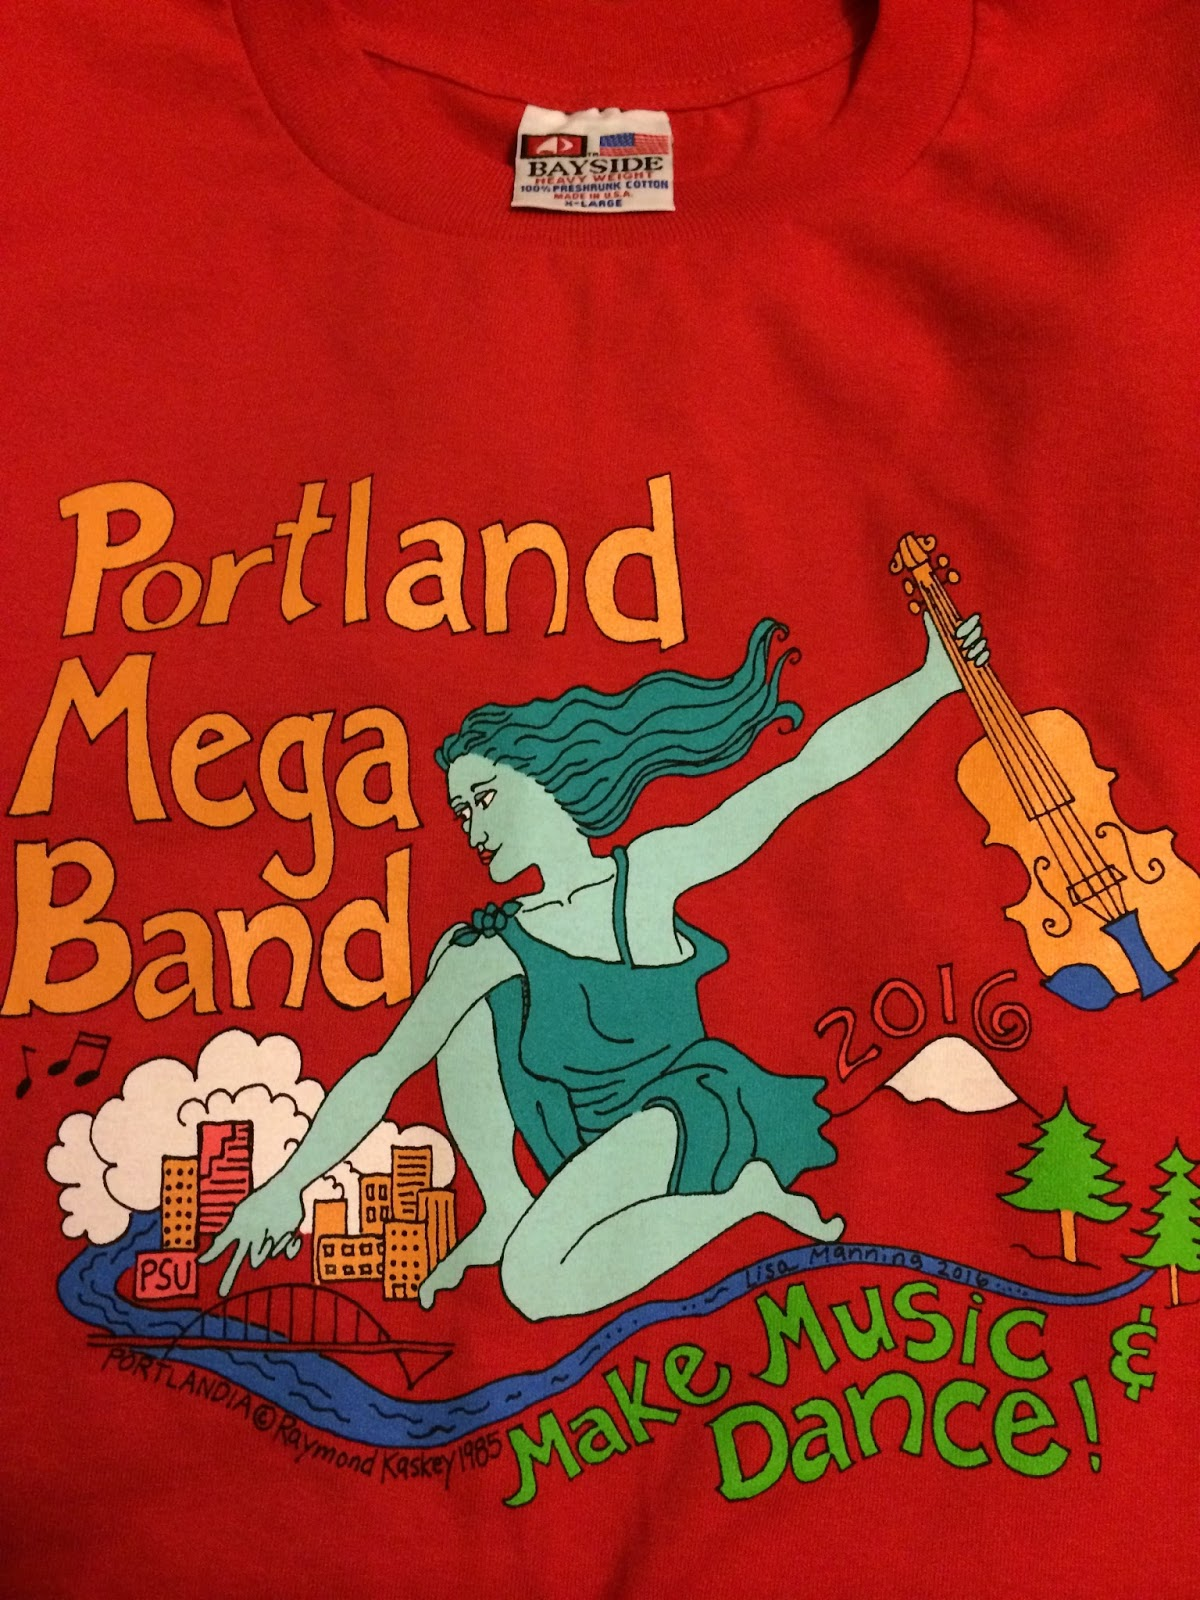 Portland megaband has 2 t shirts for 2016 both designed by me sue songer our director got permission from the portlandia statue artist raymond kaskey